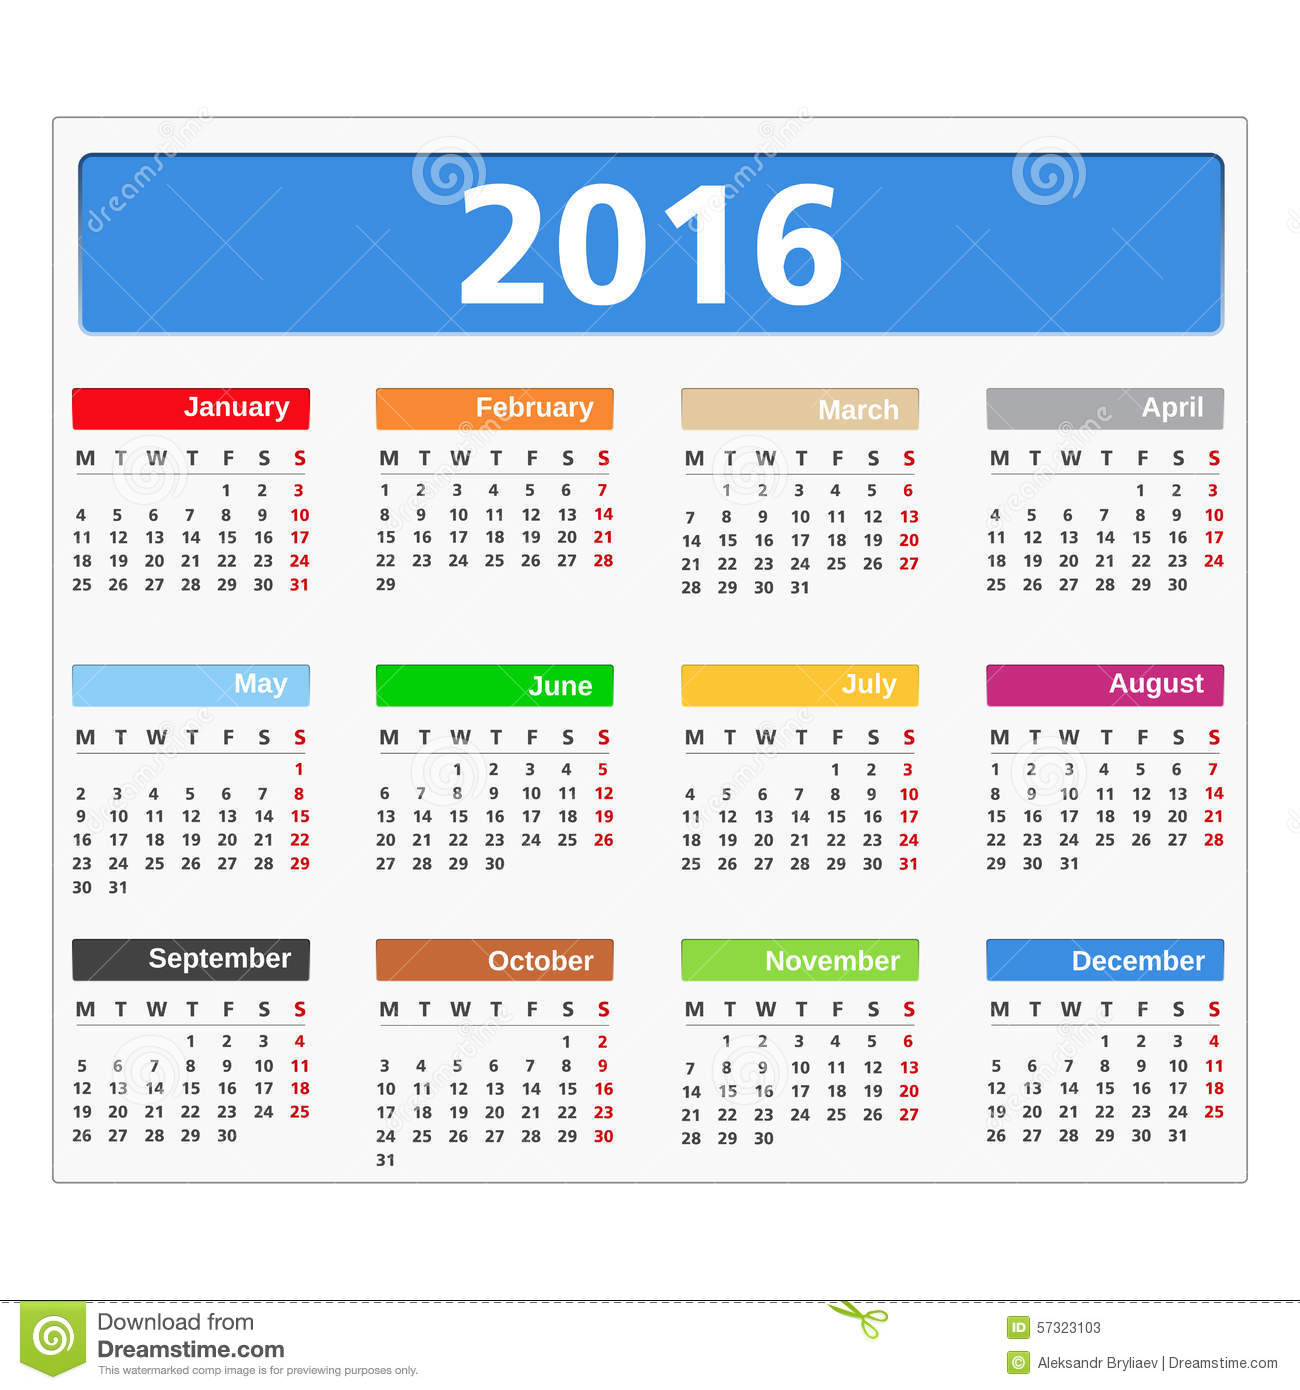 2016 calendar on white background mr no pr no 0 8586 0